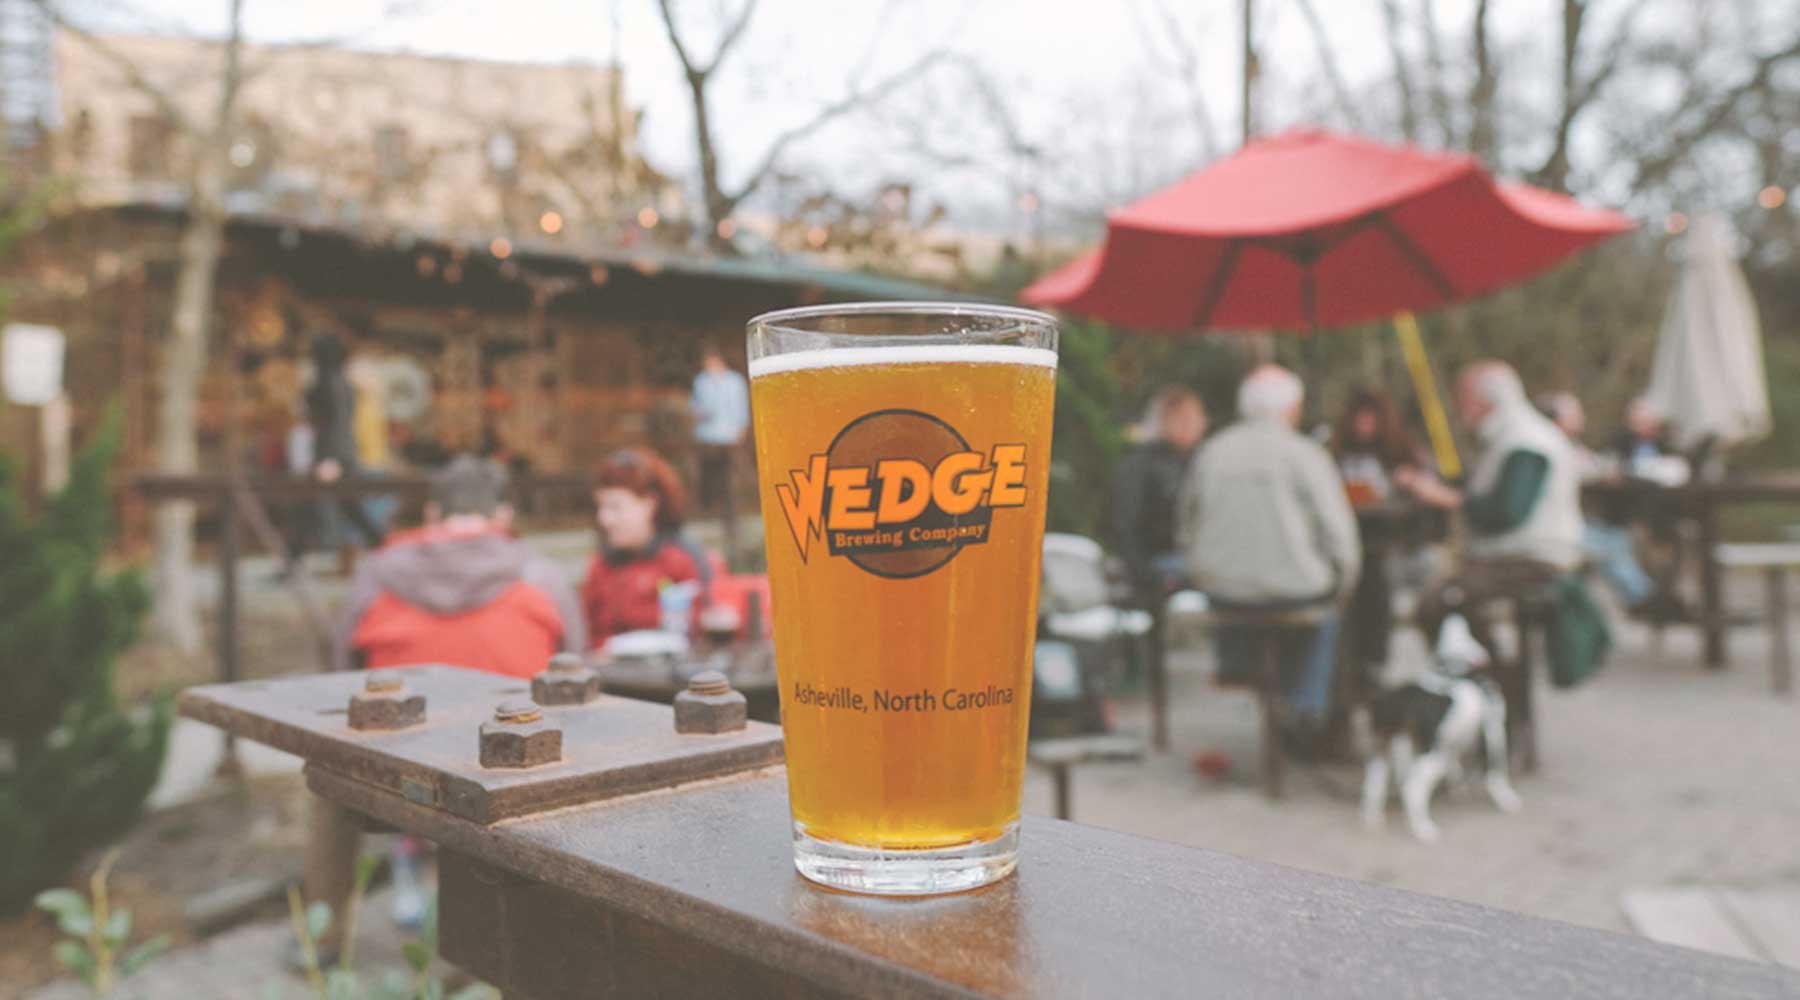 Wedge Brewing Company | Just Wine